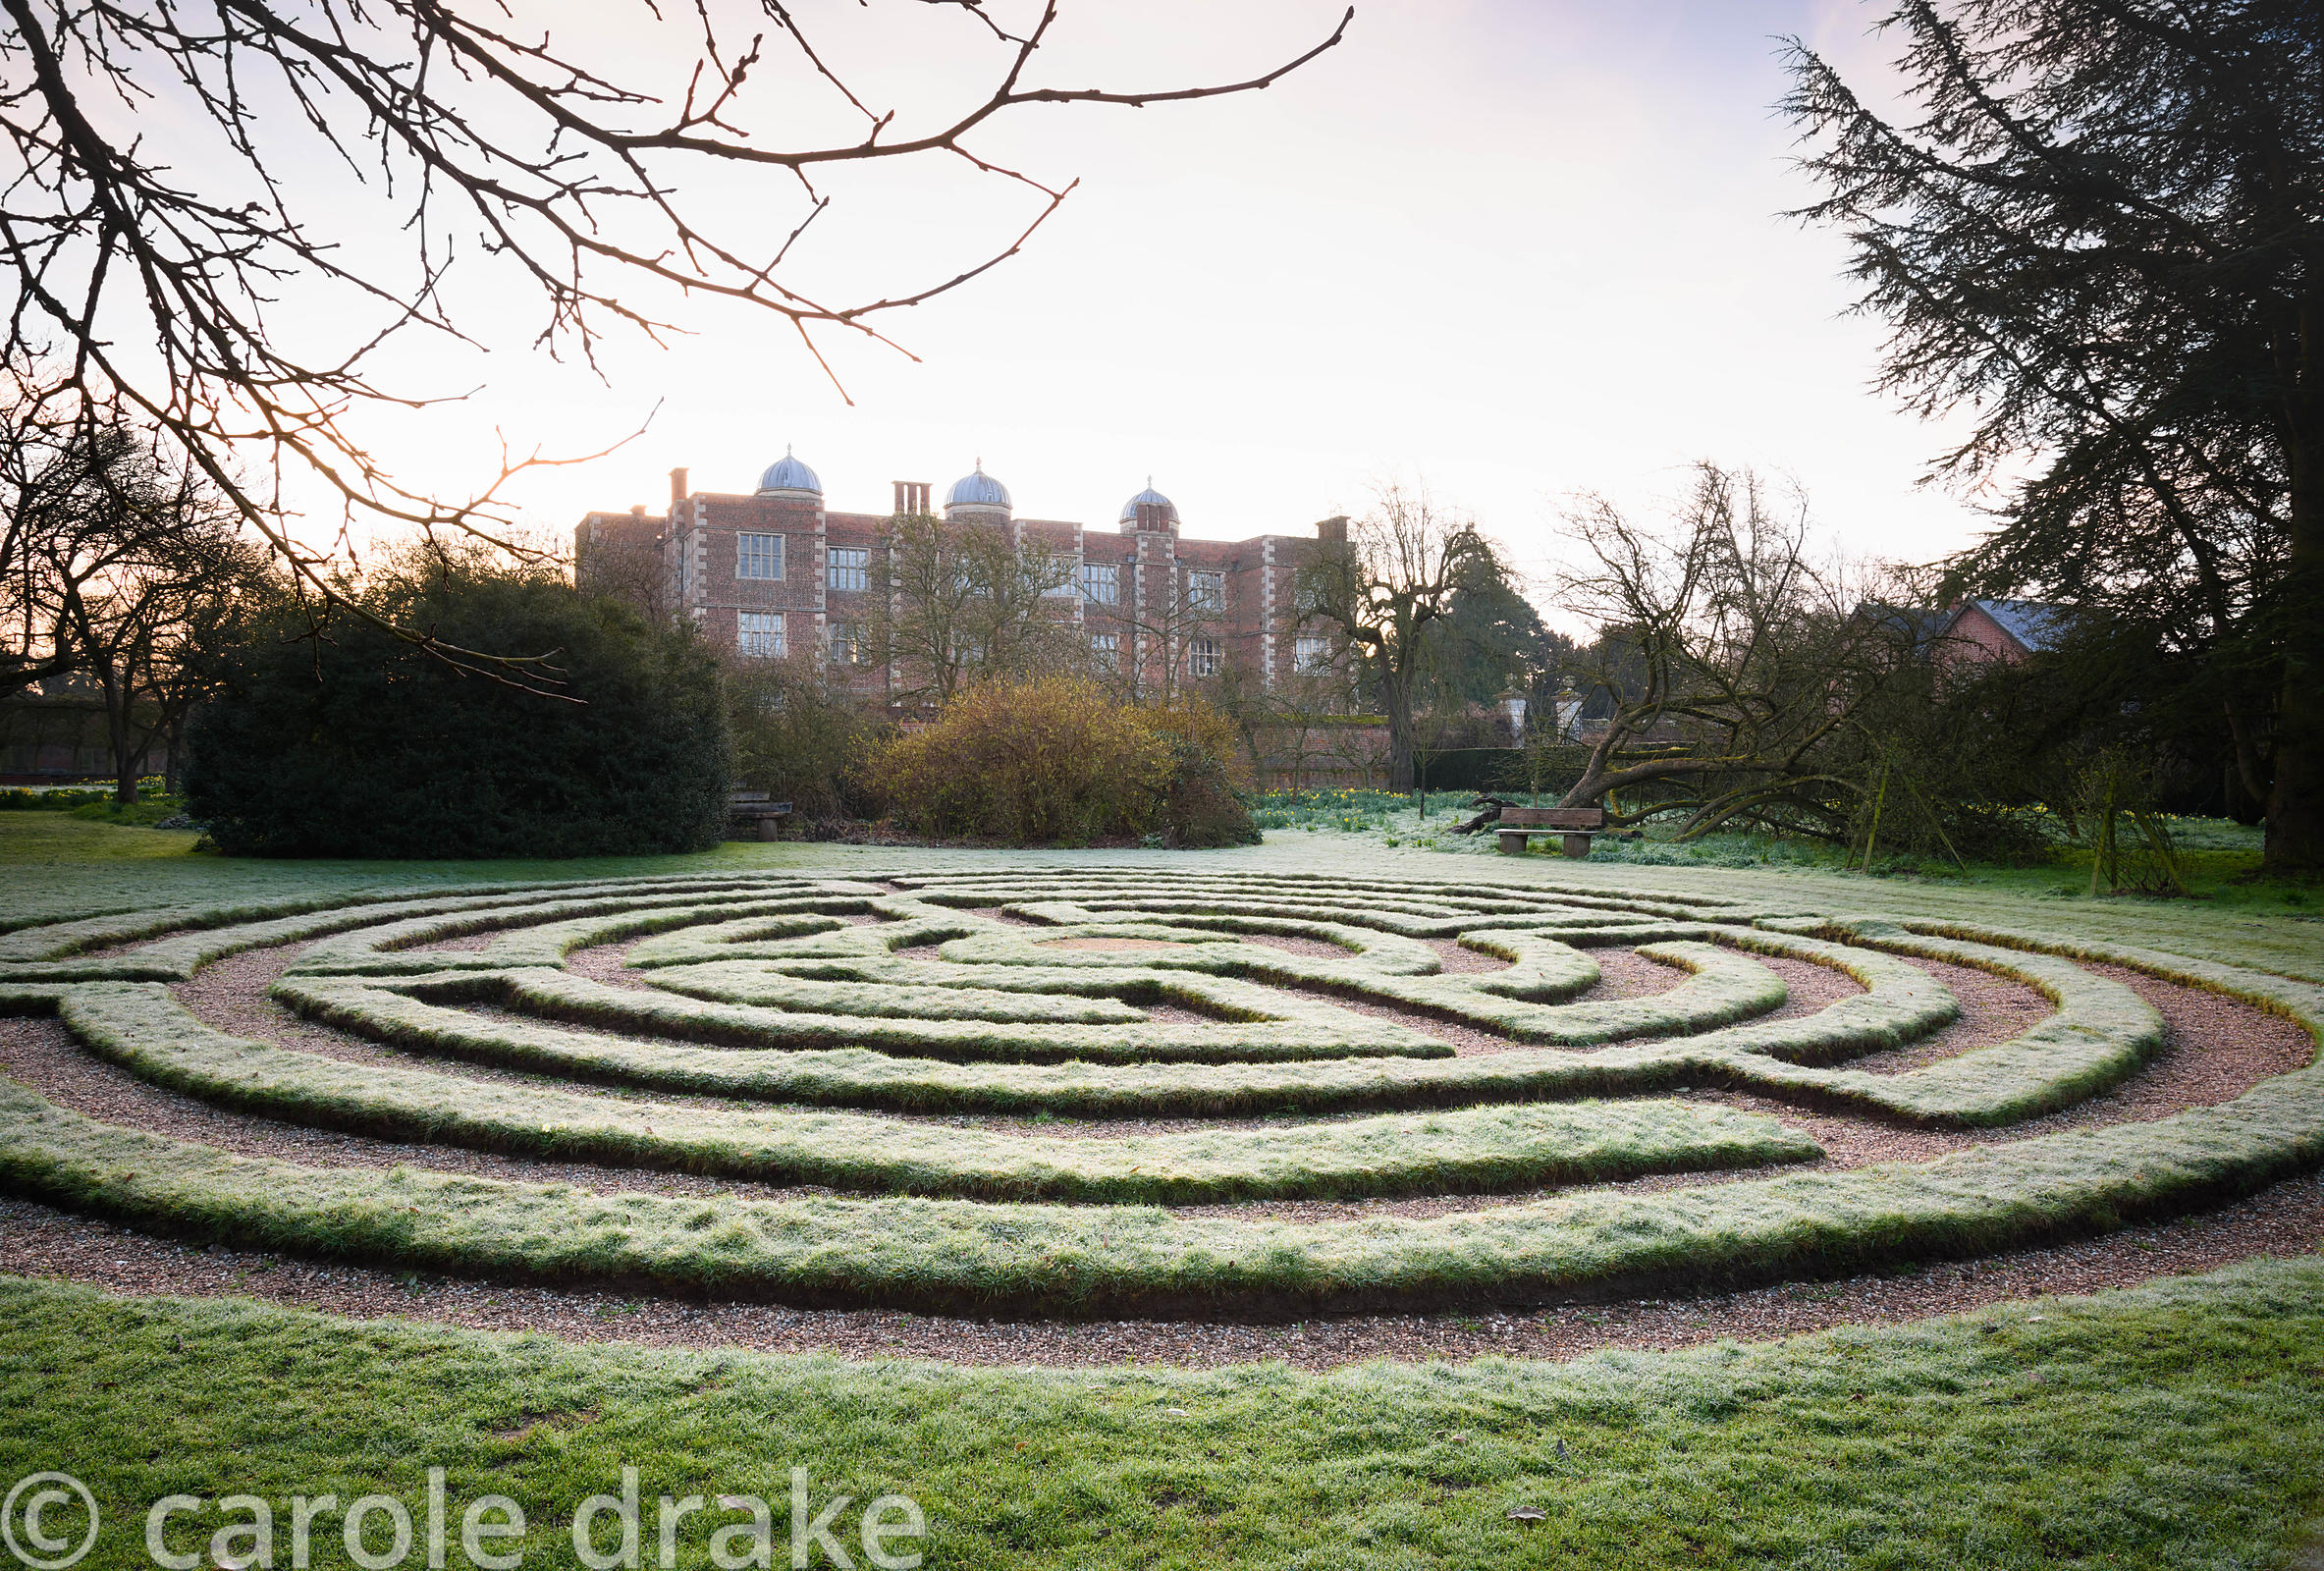 Turf maze created in the 1980s at Doddington Hall, Lincolnshire on a frosty March morning